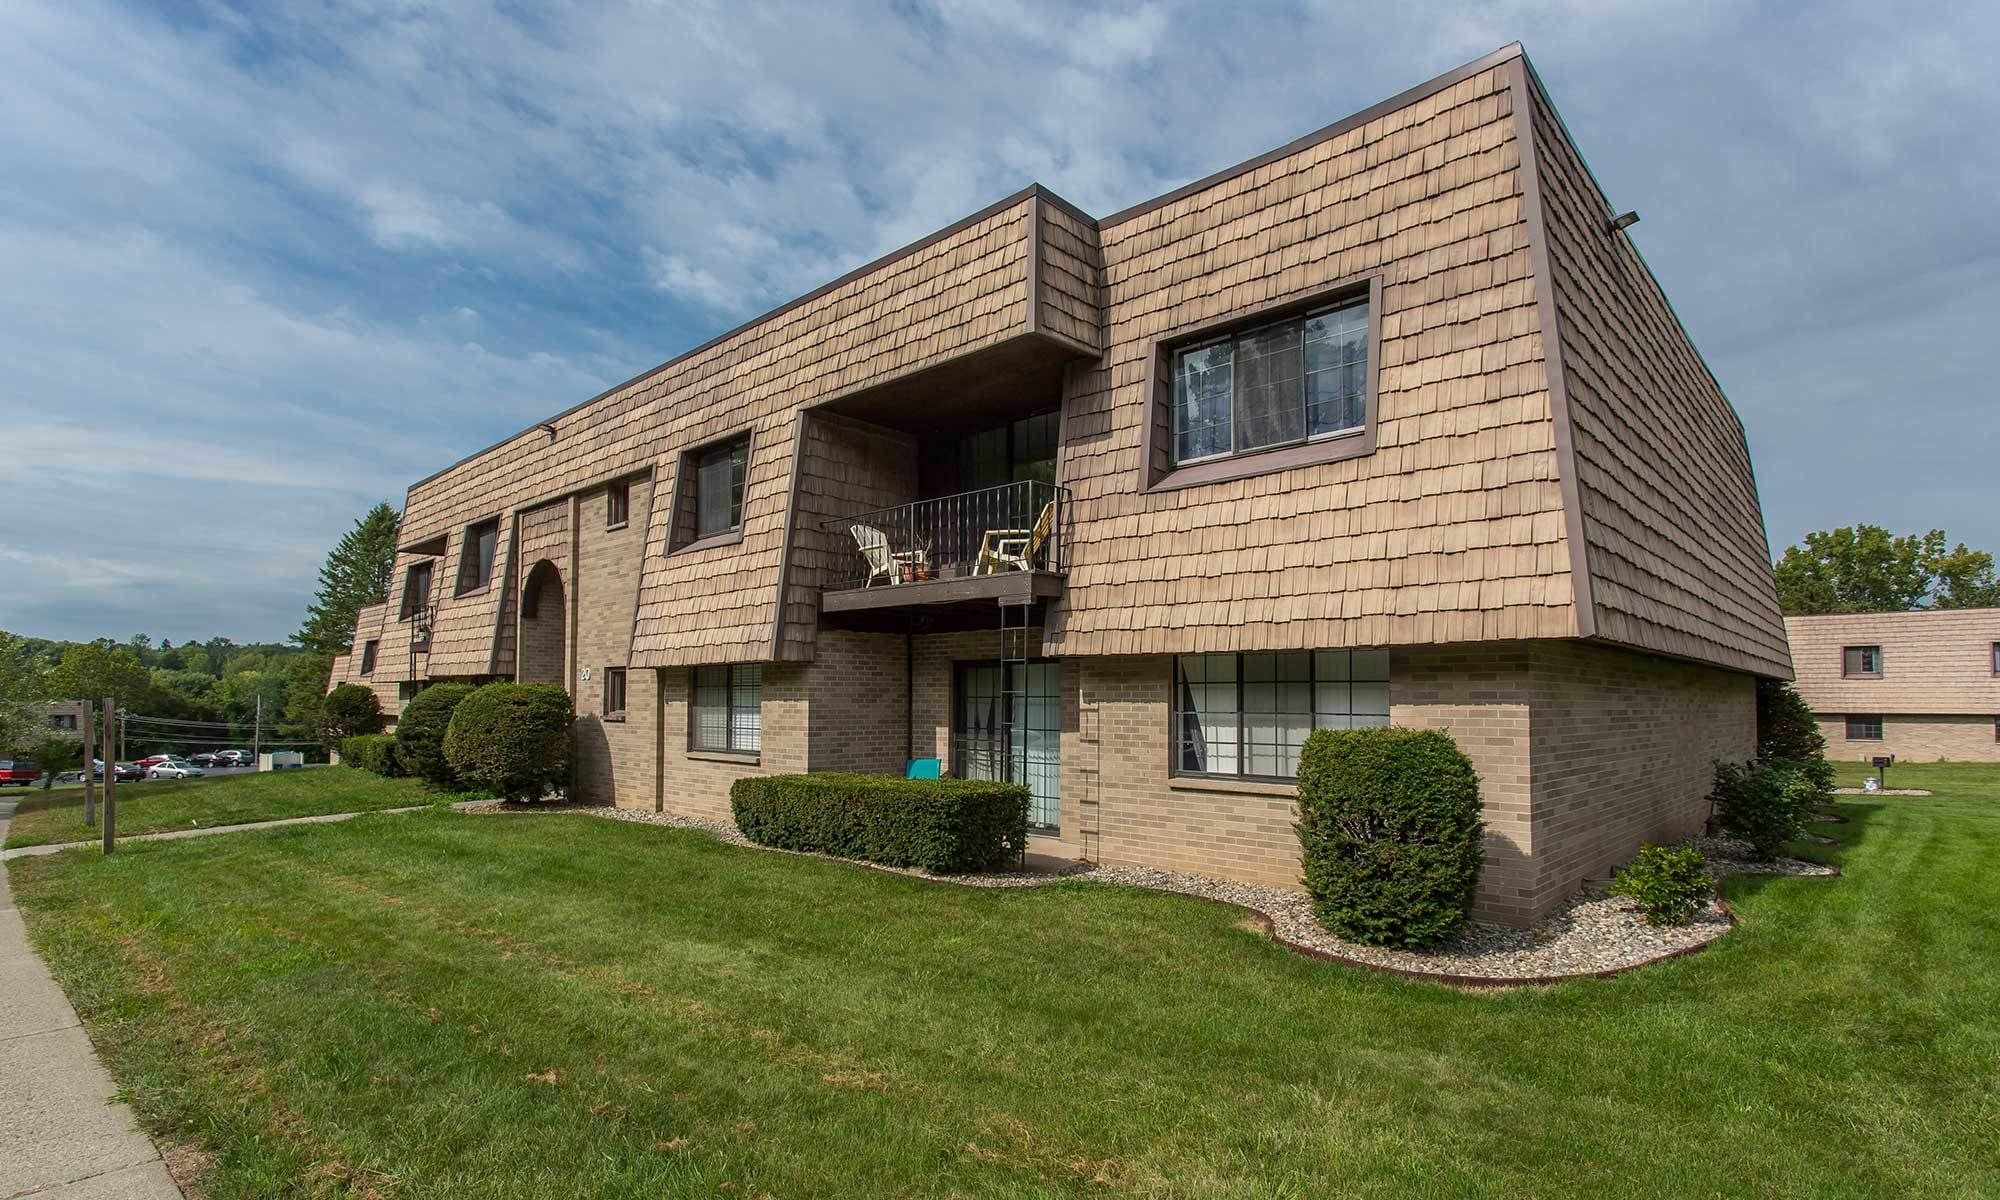 Apartments in Slingerlands, NY